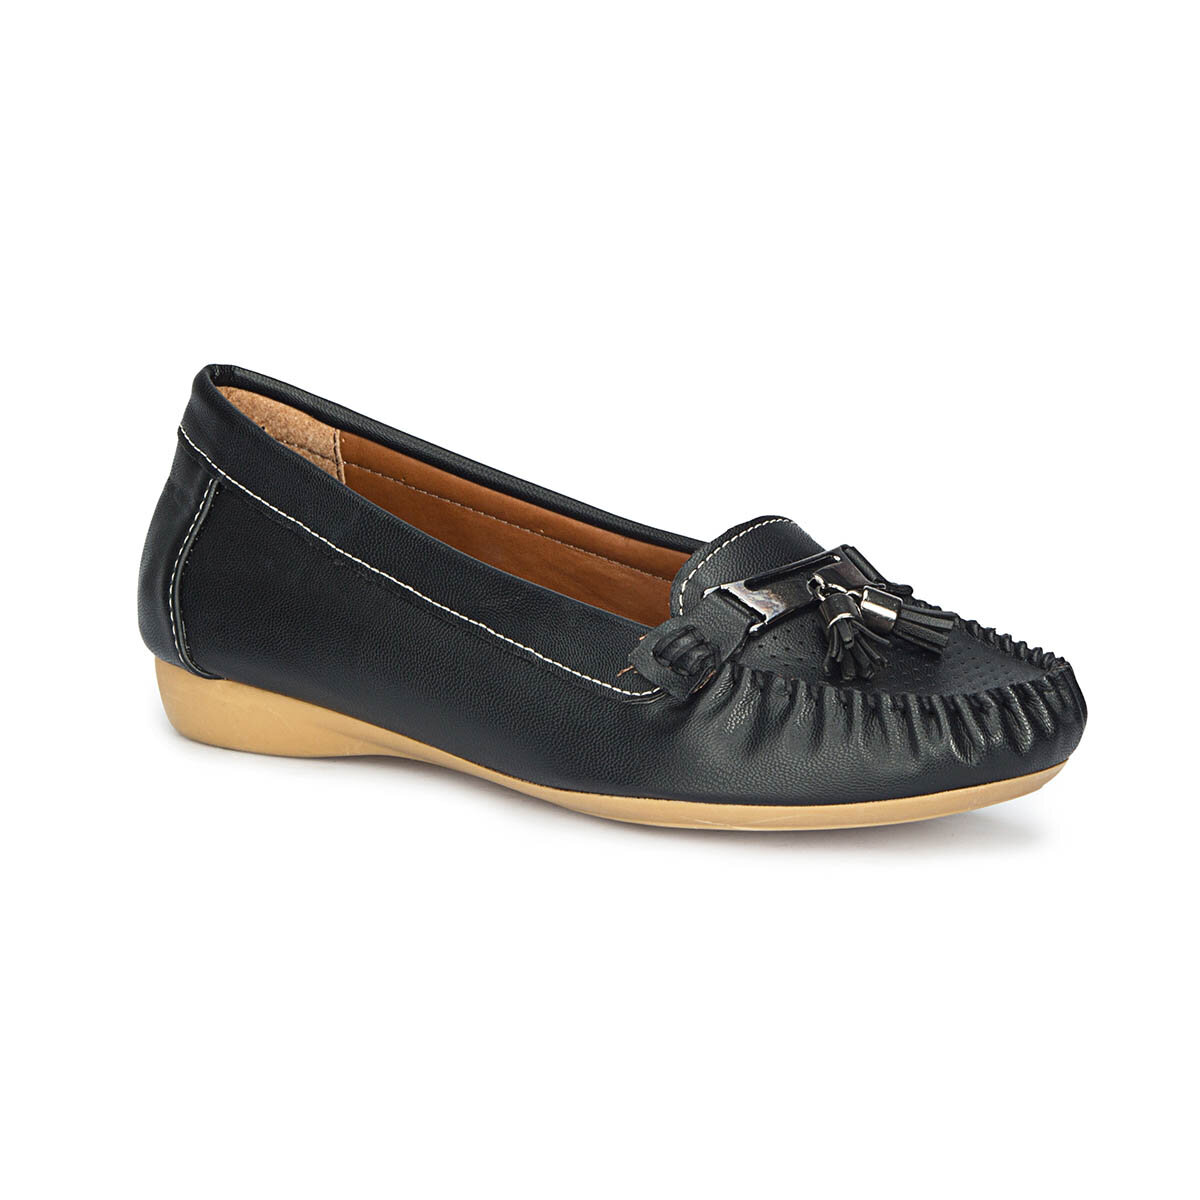 FLO 71. 157232.Z Black Women Loafer Shoes Polaris